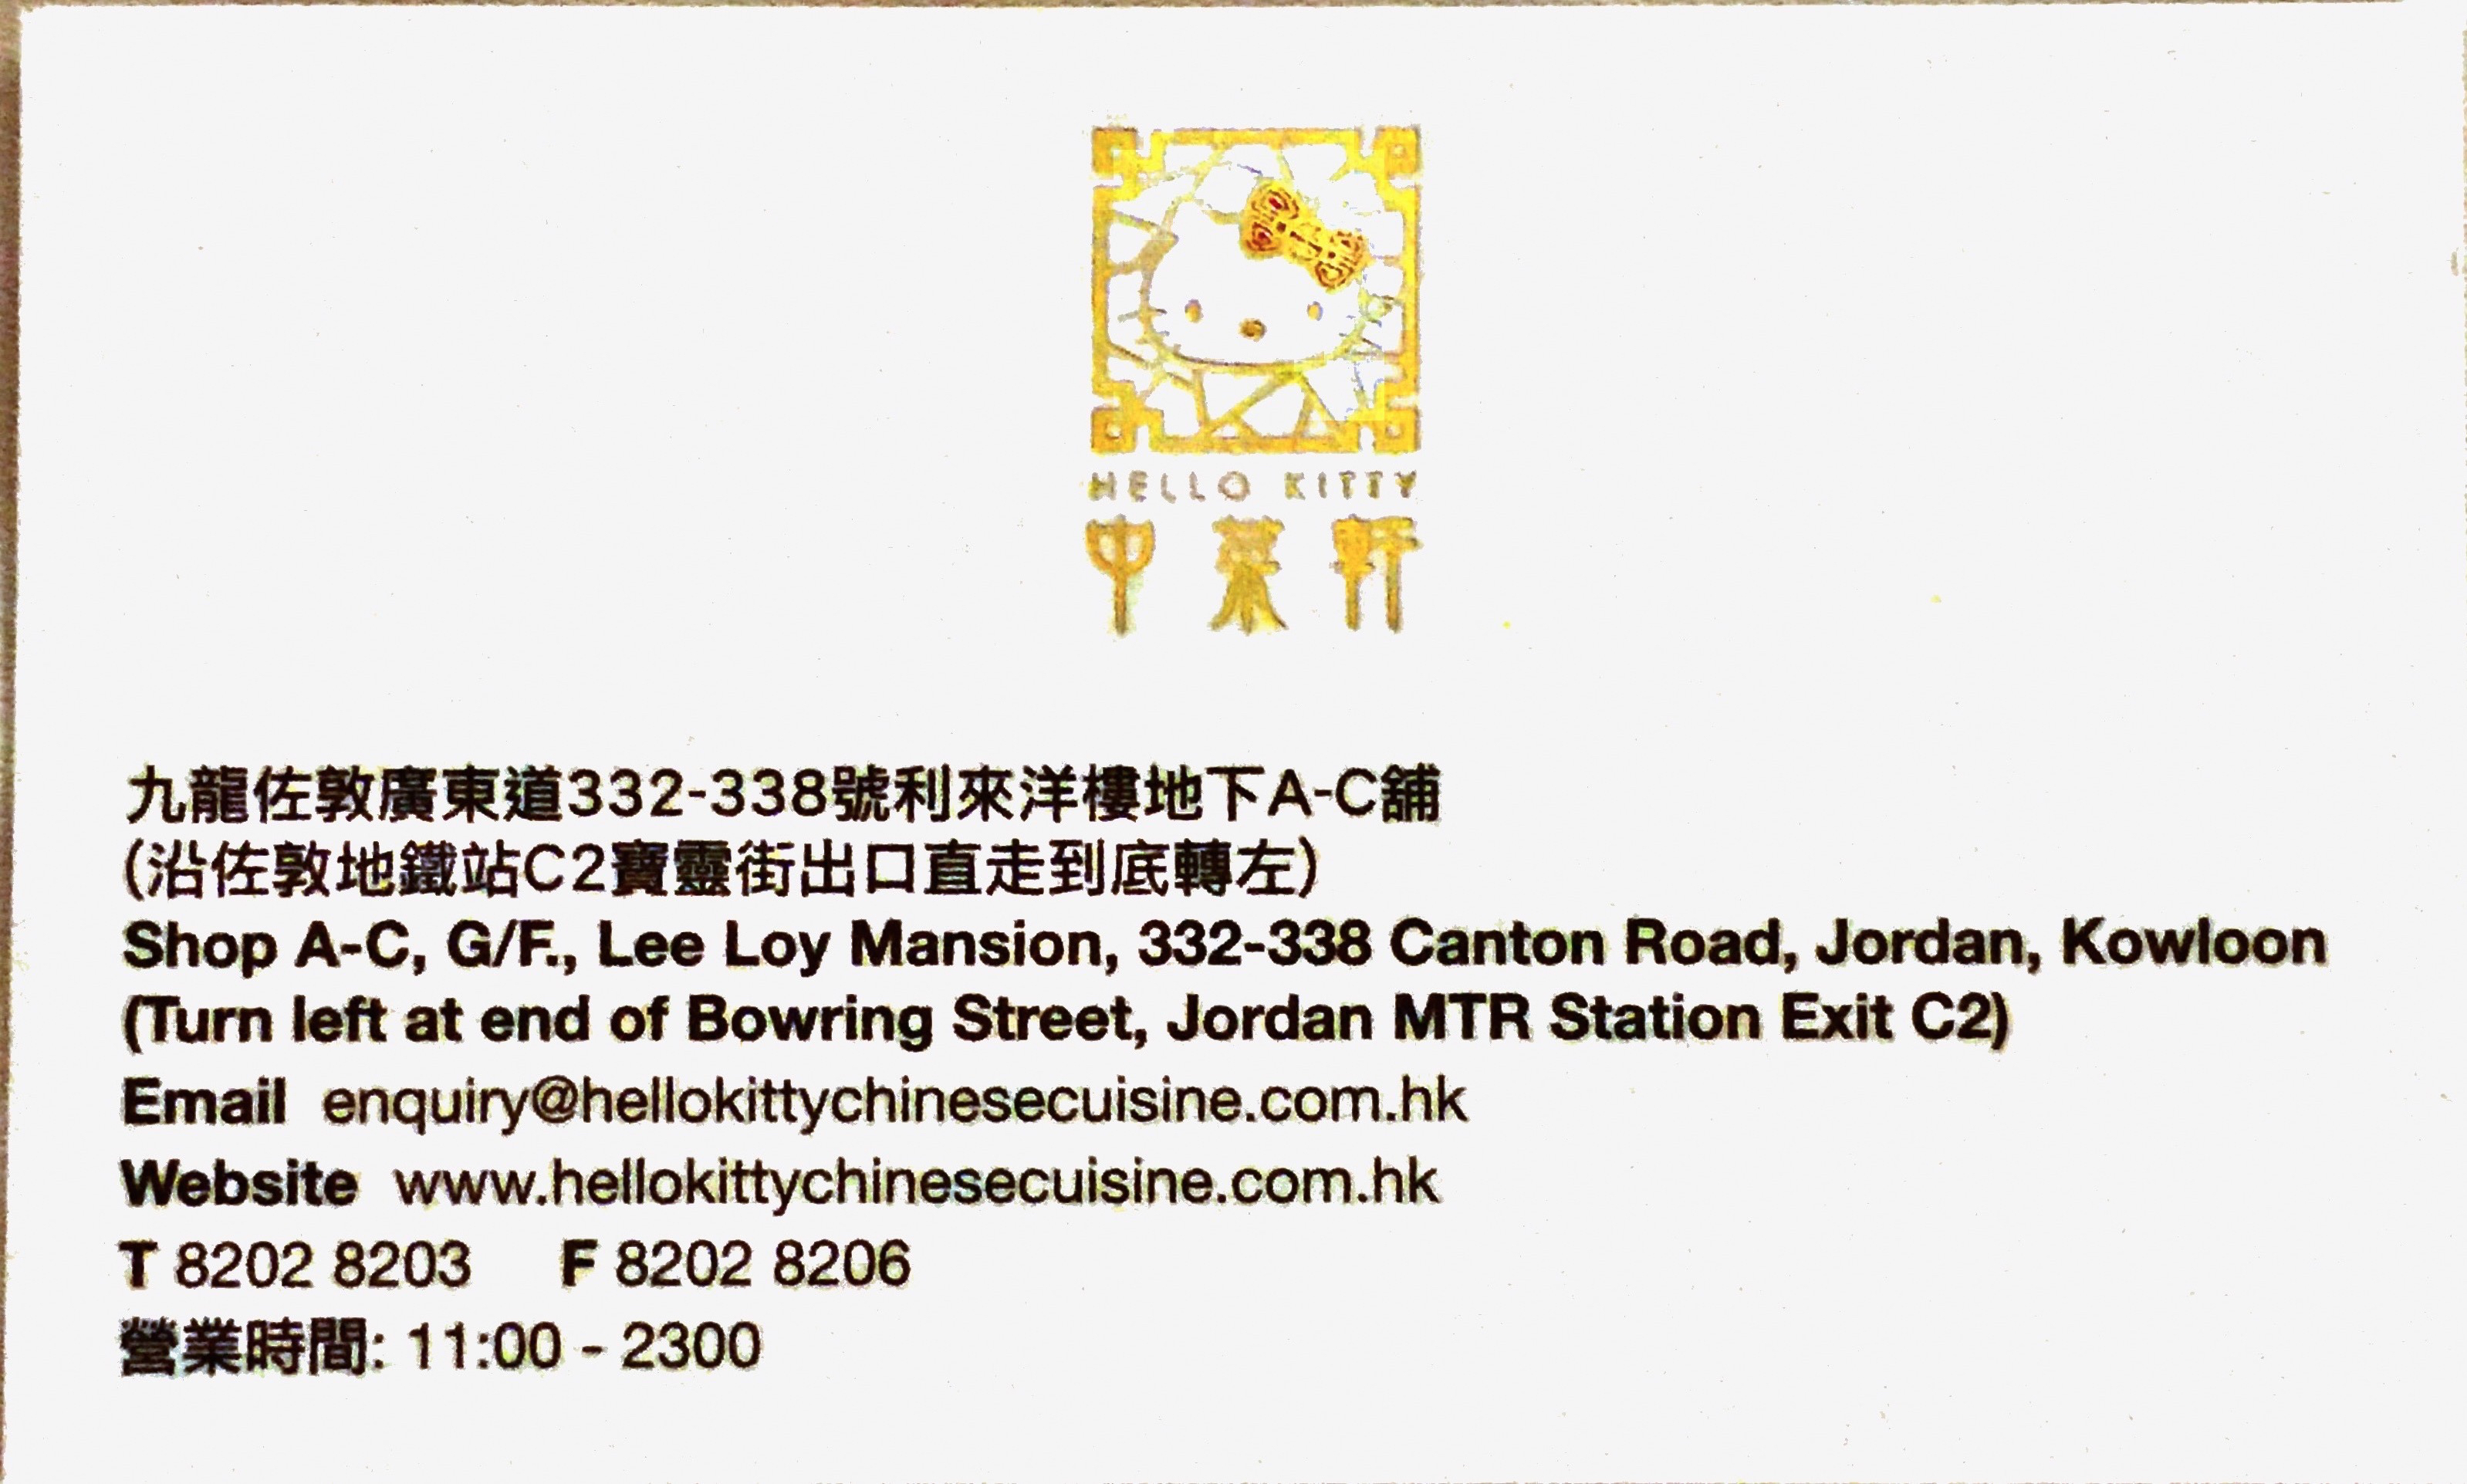 Tasting Hello Kitty 中菜è ' in Hong Kong nice Chinese cuisines as